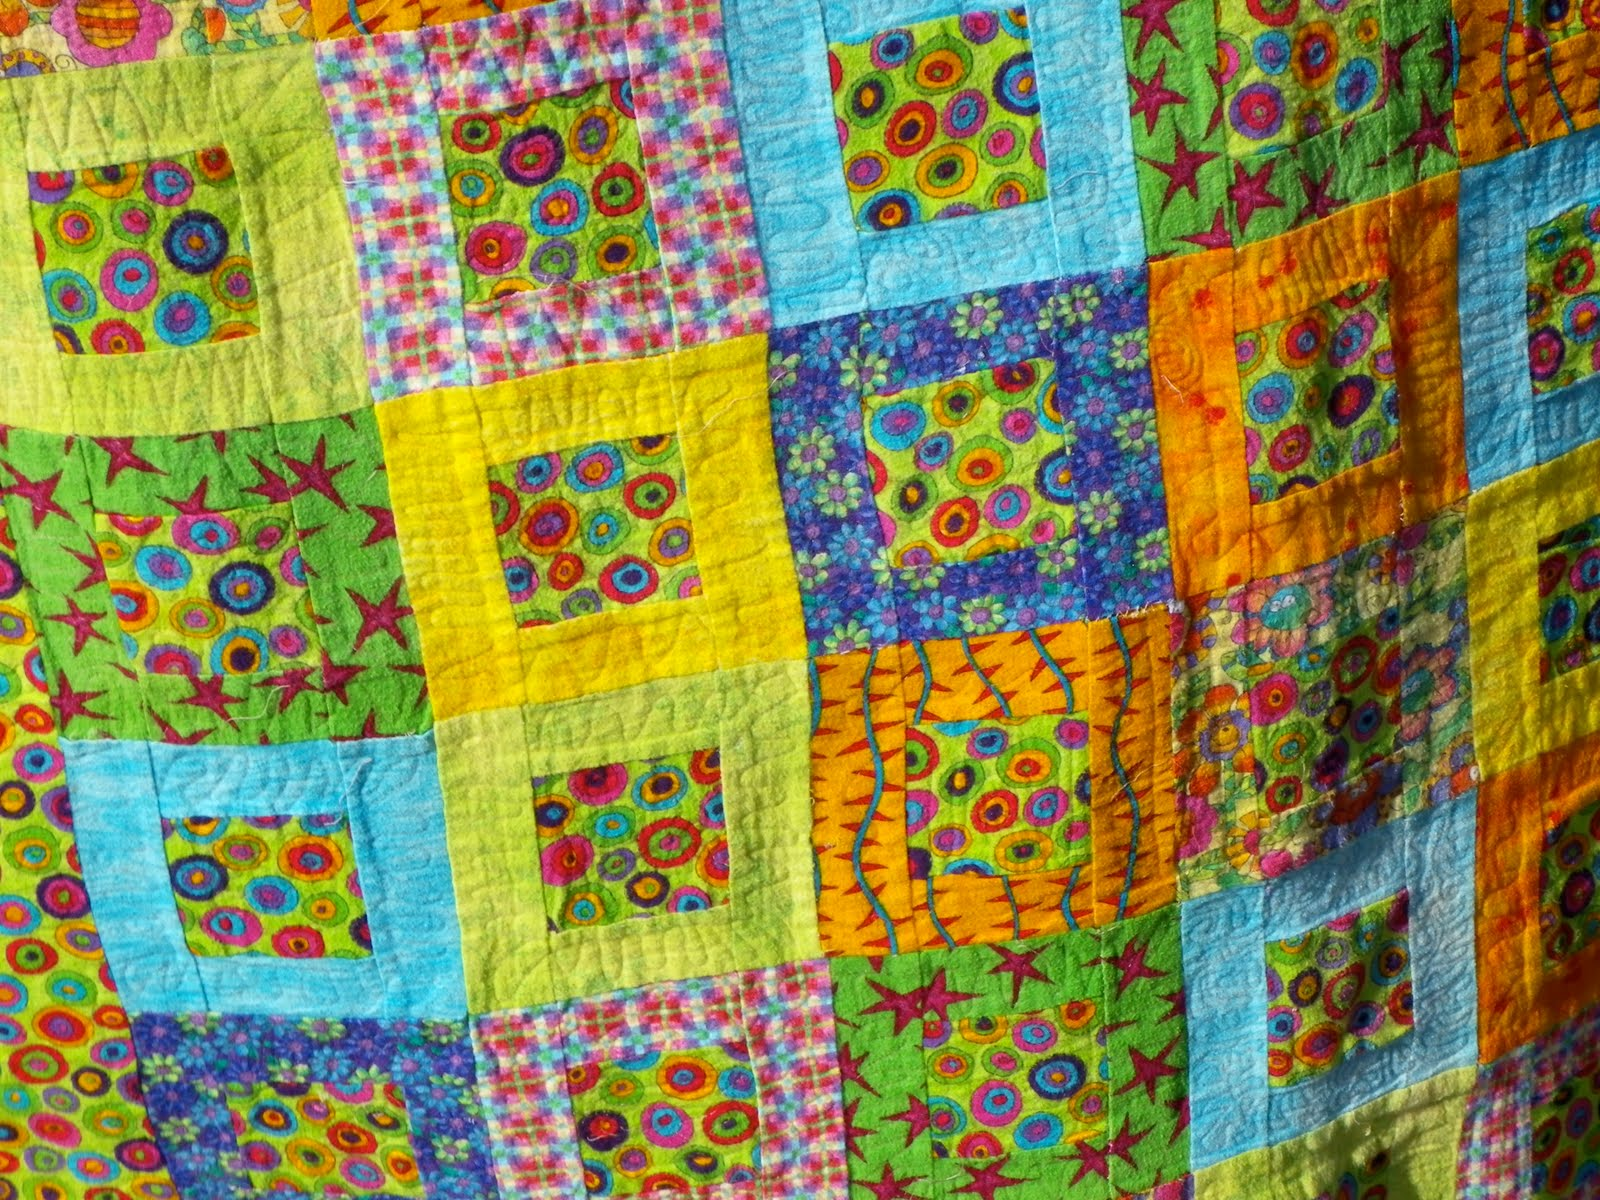 Little Island Quilting: Quilts without batting : little island quilting - Adamdwight.com